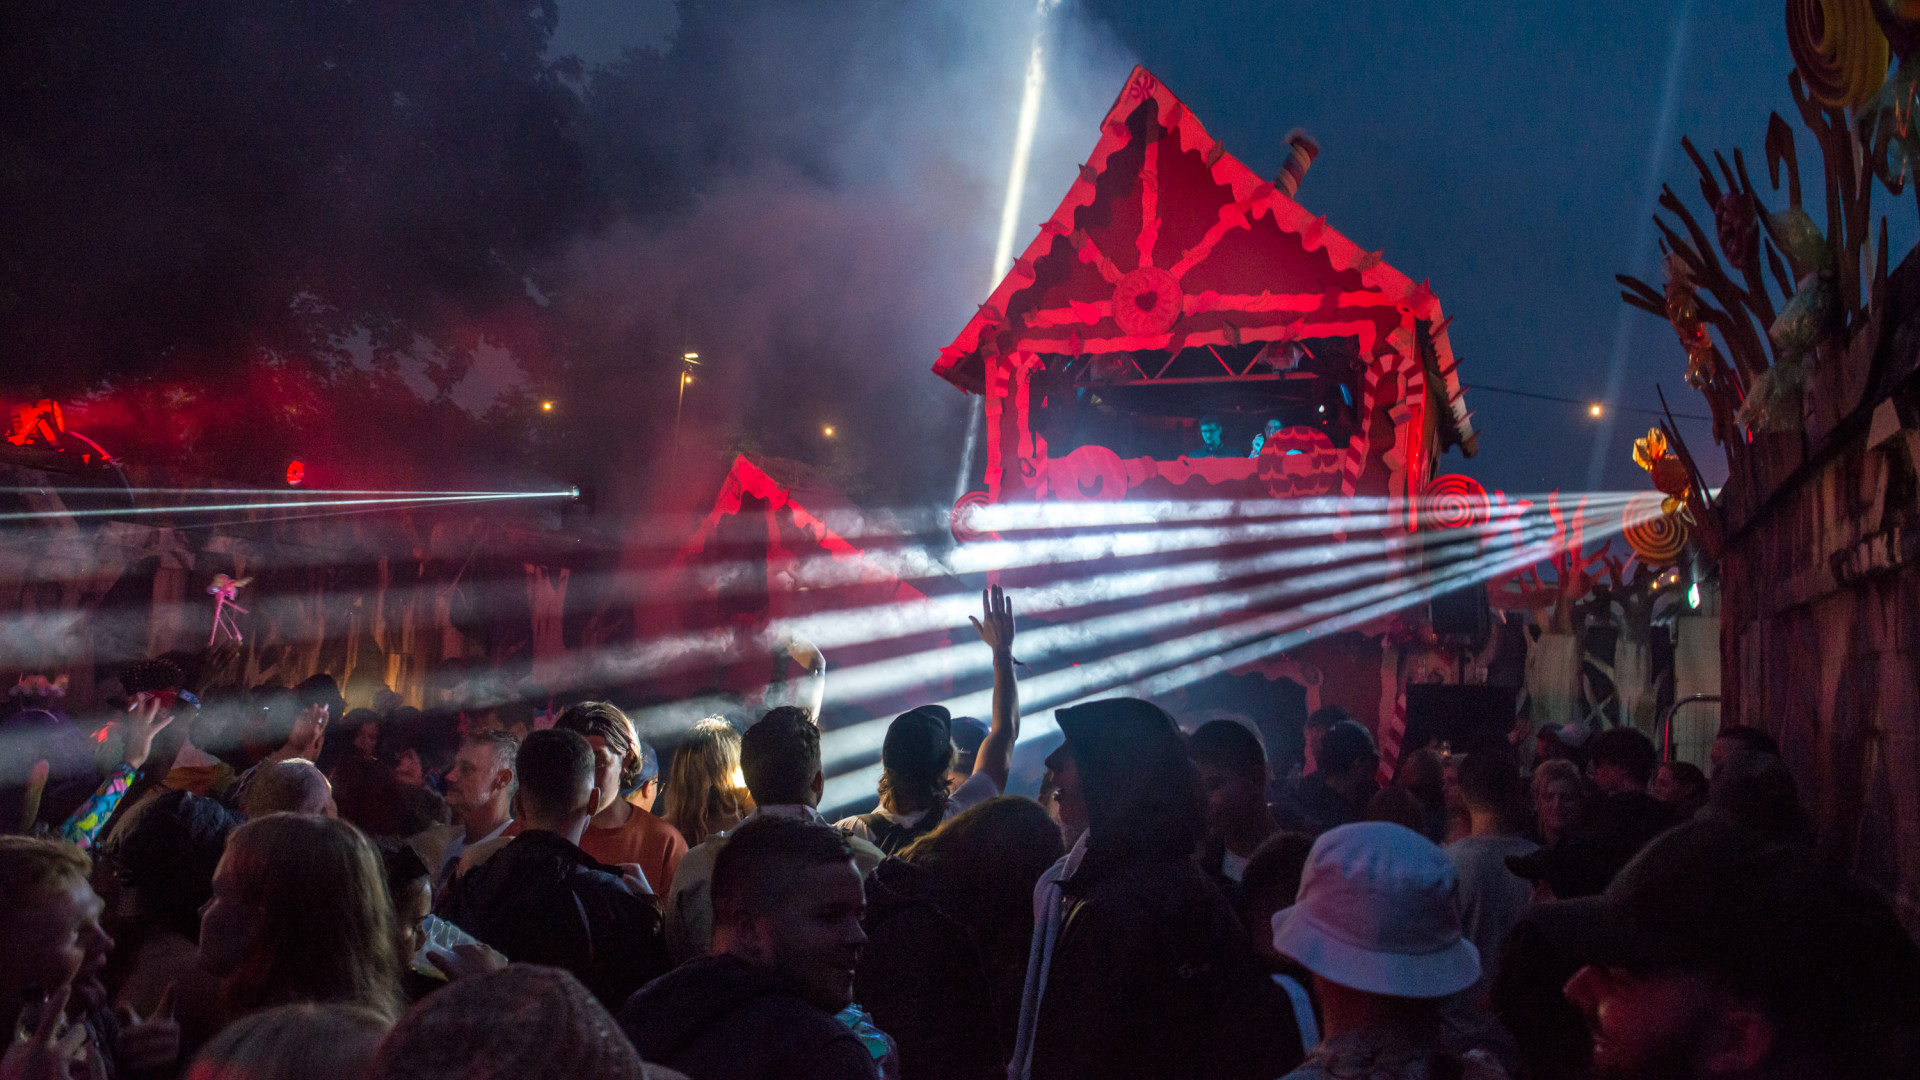 The Cowshed stage decorated as a gingerbread house at Standon Calling 2017